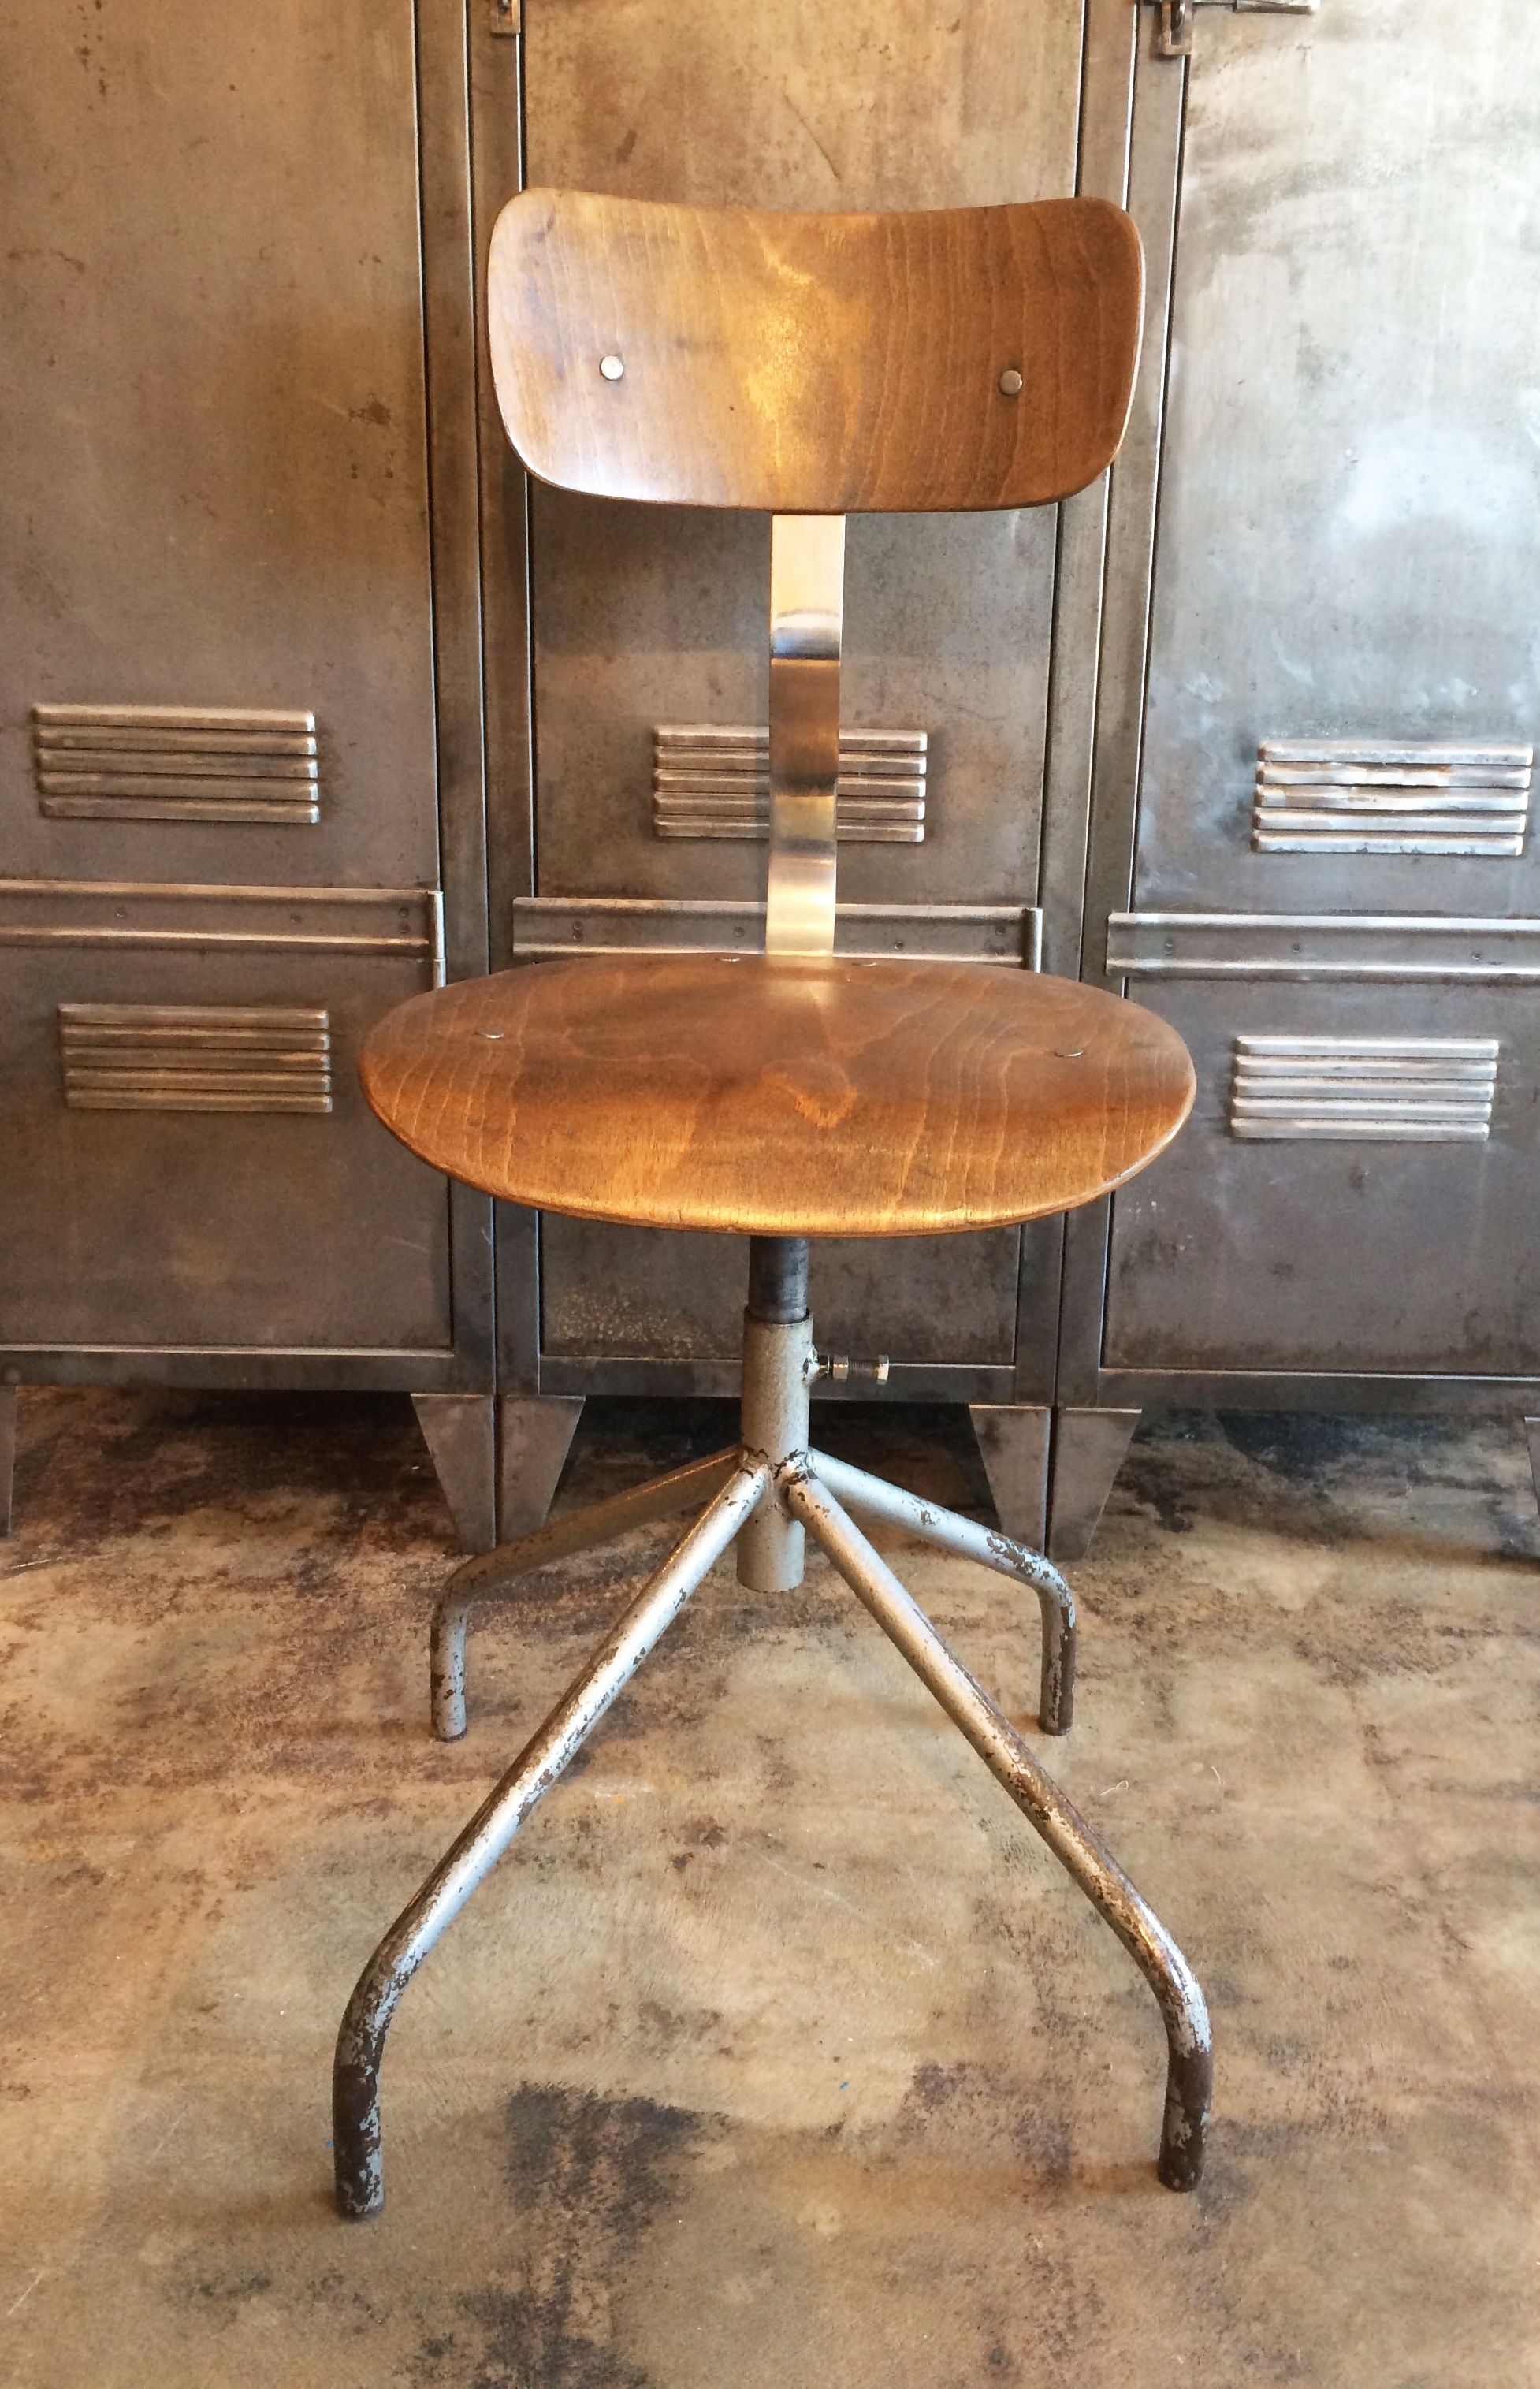 Exceptional French Vintage Factory Stool Chair Industrielle Attitude 4763 Eagle Rock  Blvd. Los Angeles, CA · Vintage Industrial FurnitureIndustrial ...